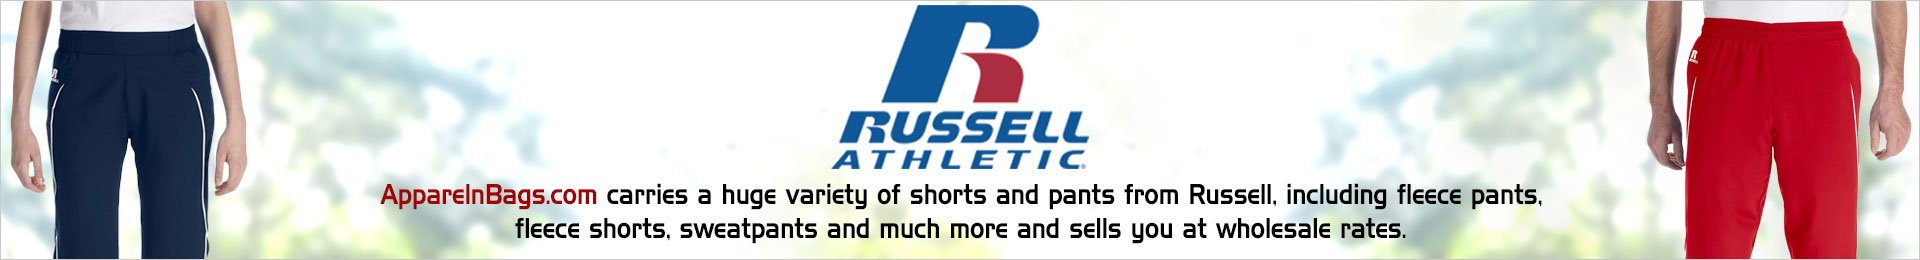 Russell Athletic Pants And Shorts